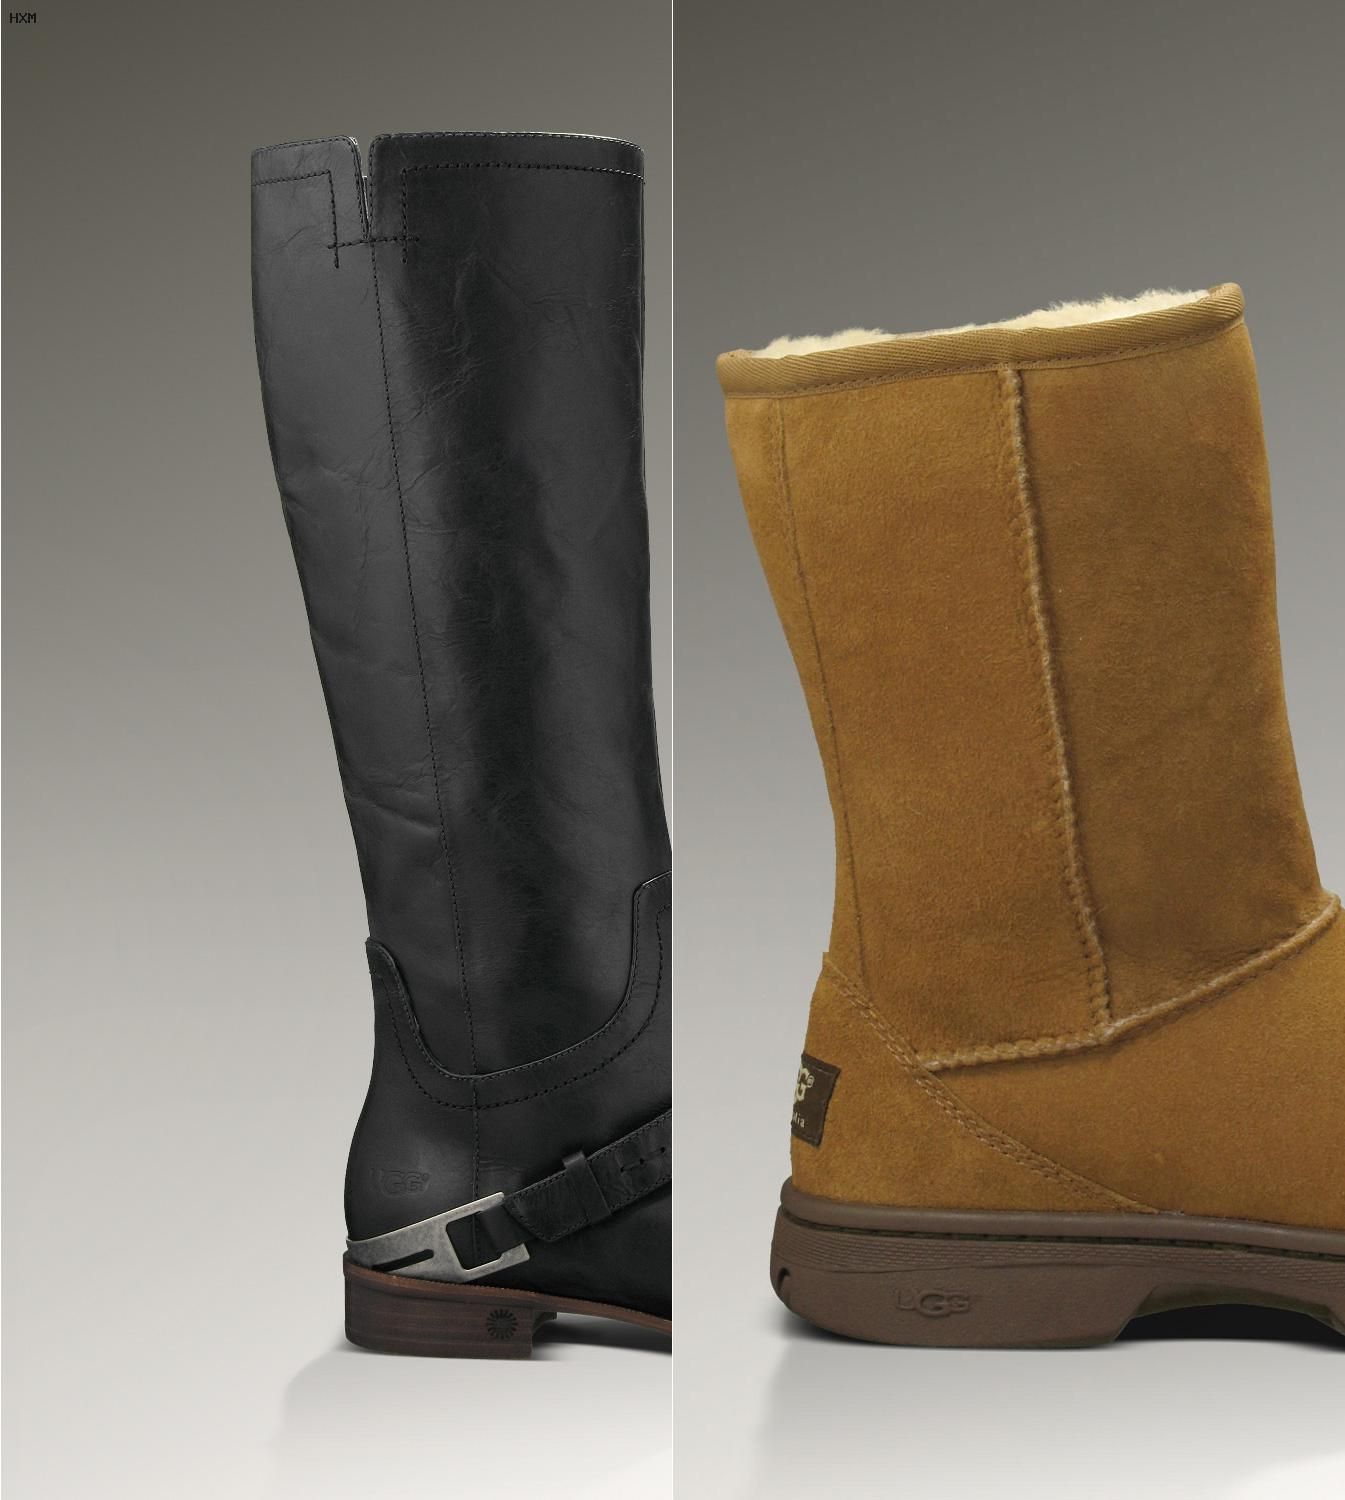 3c9c747a933 las botas ugg de amazon son originales